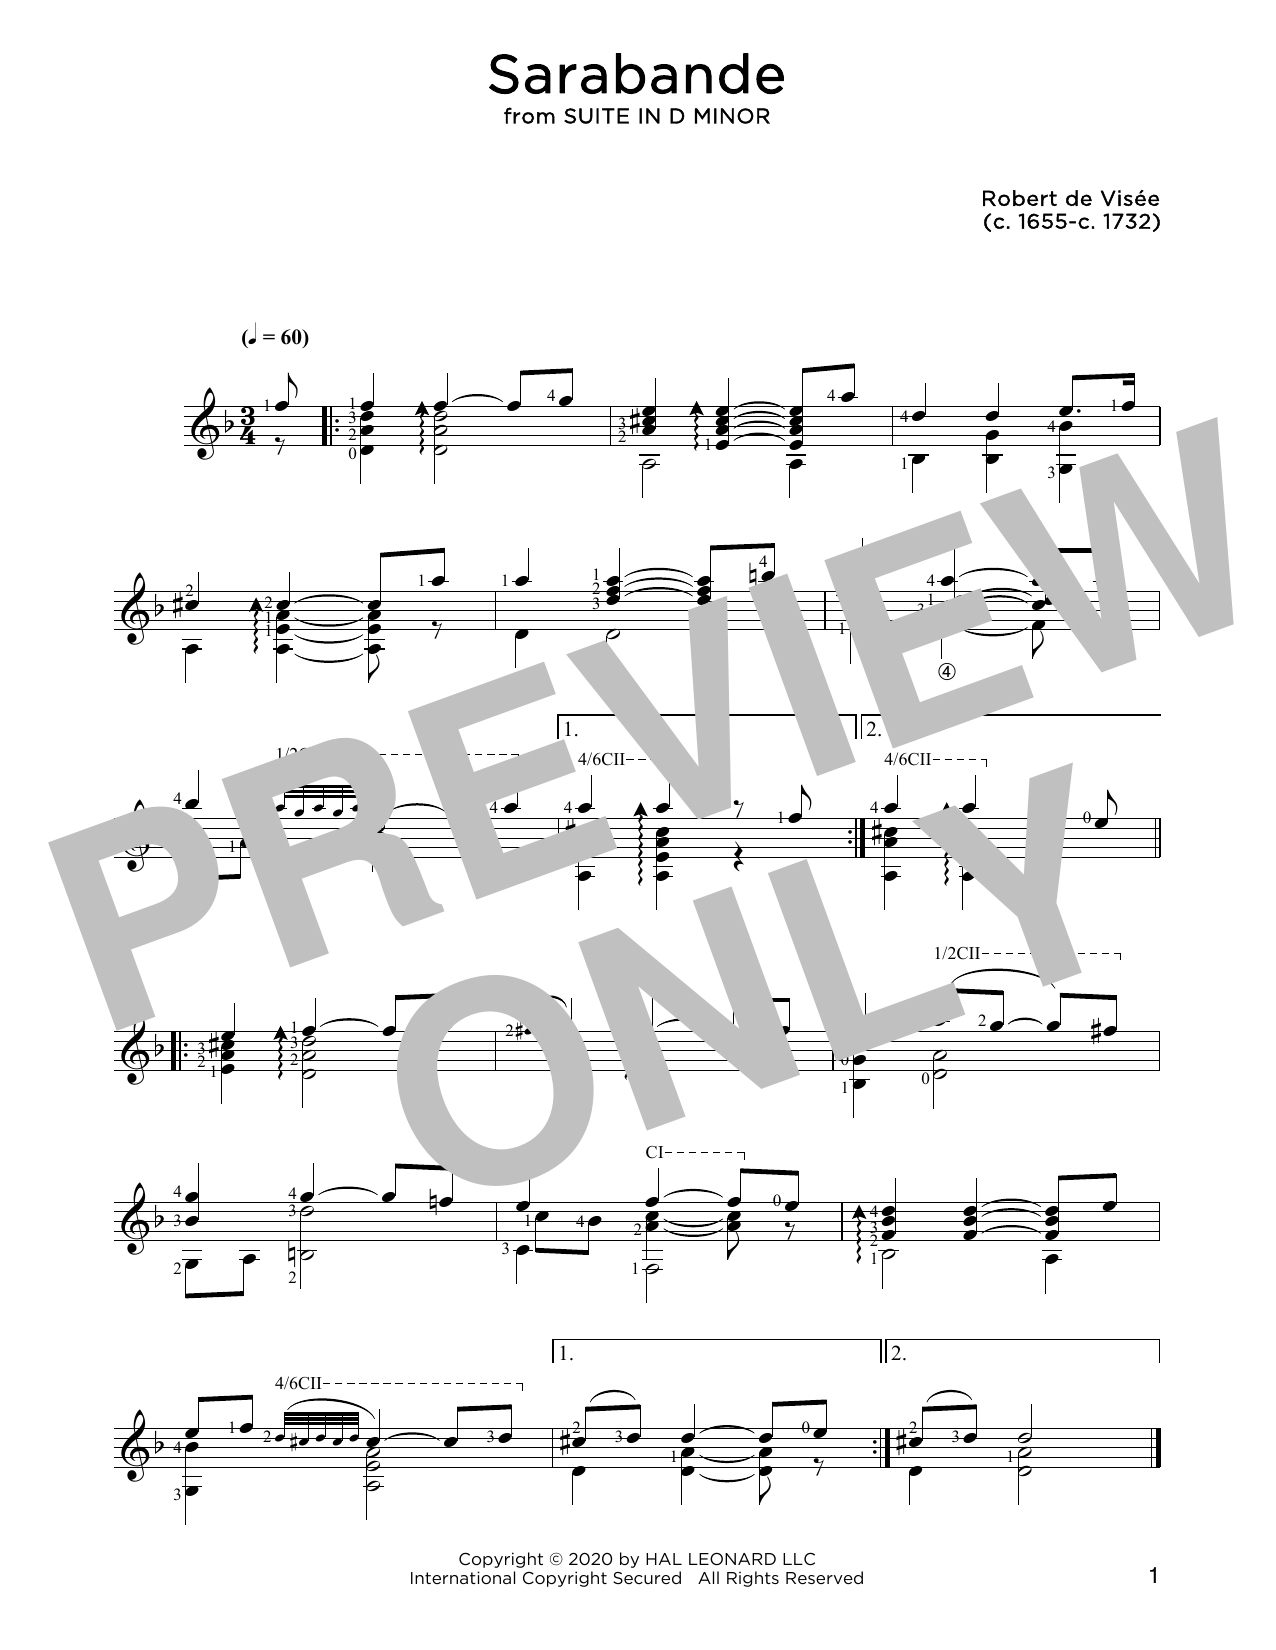 Robert de Visee Sarabande sheet music notes and chords. Download Printable PDF.